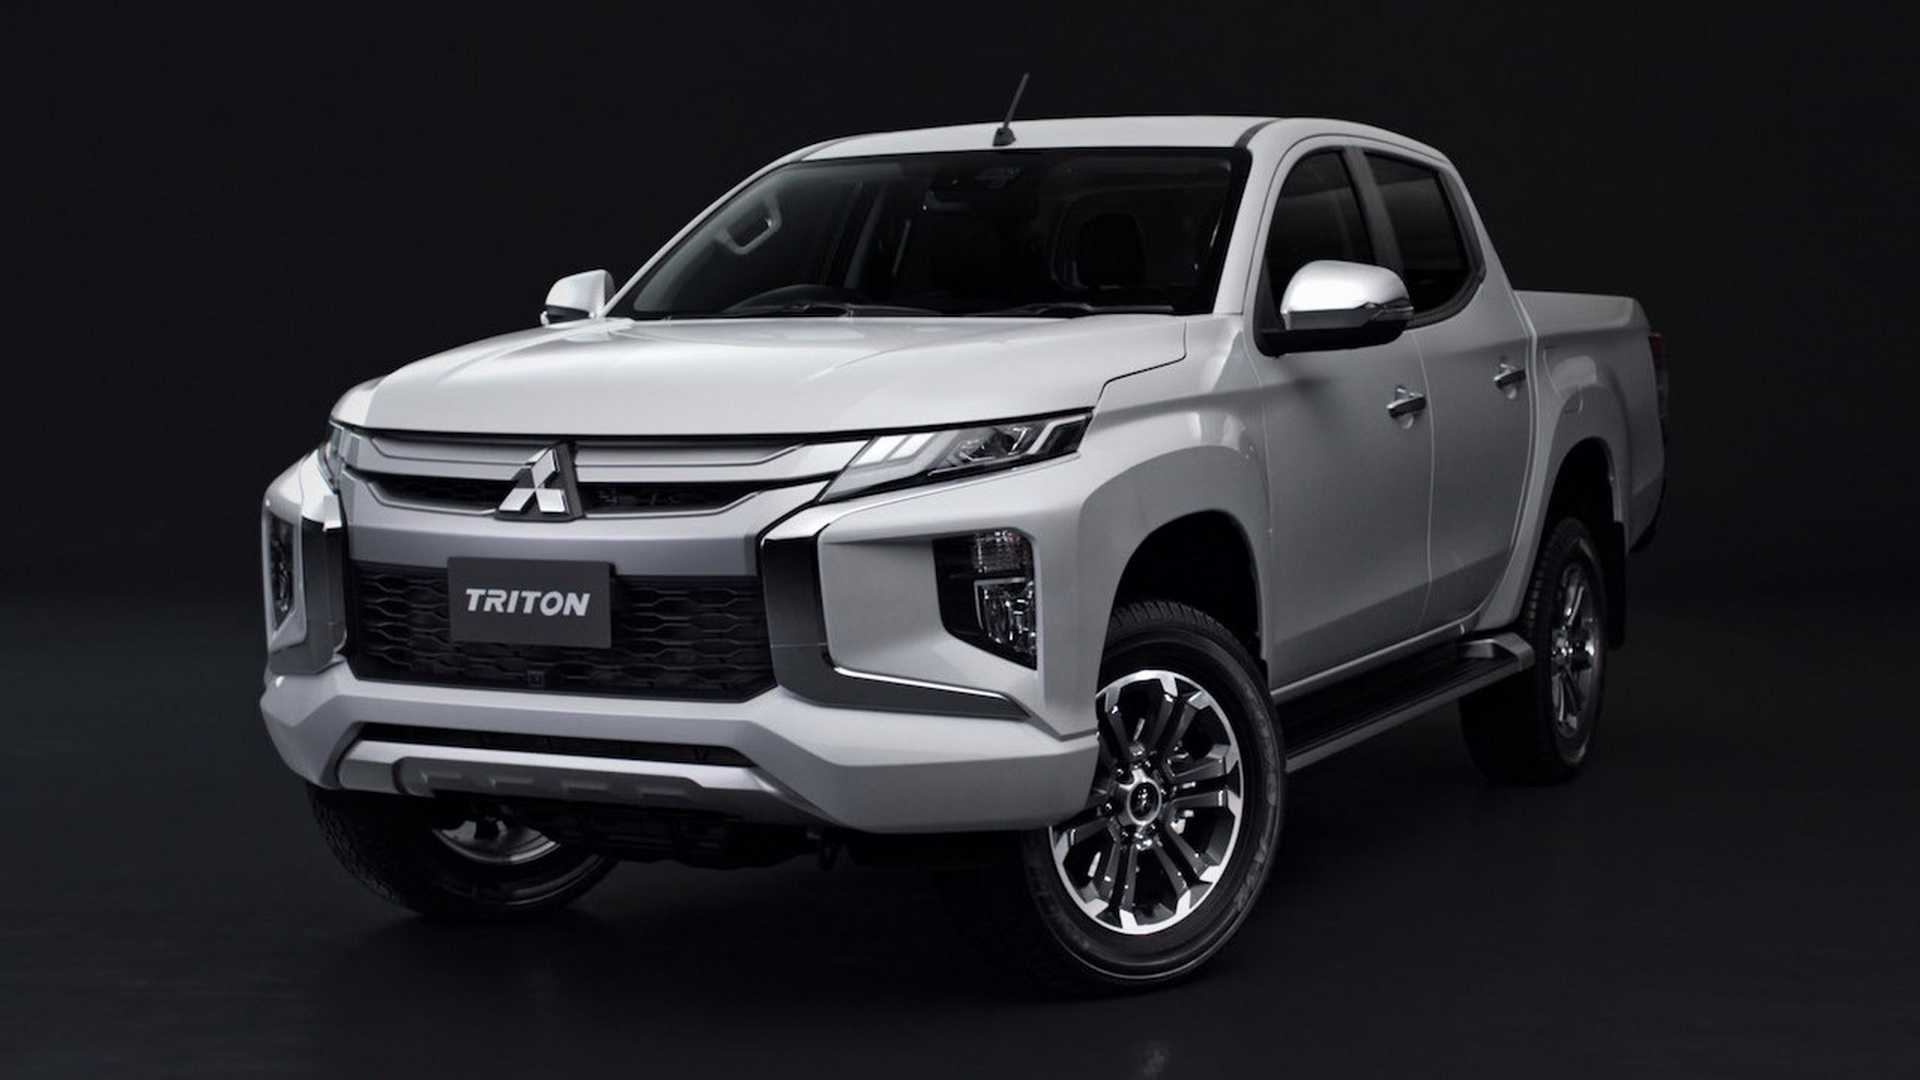 50 The Best 2019 Mitsubishi Triton Review